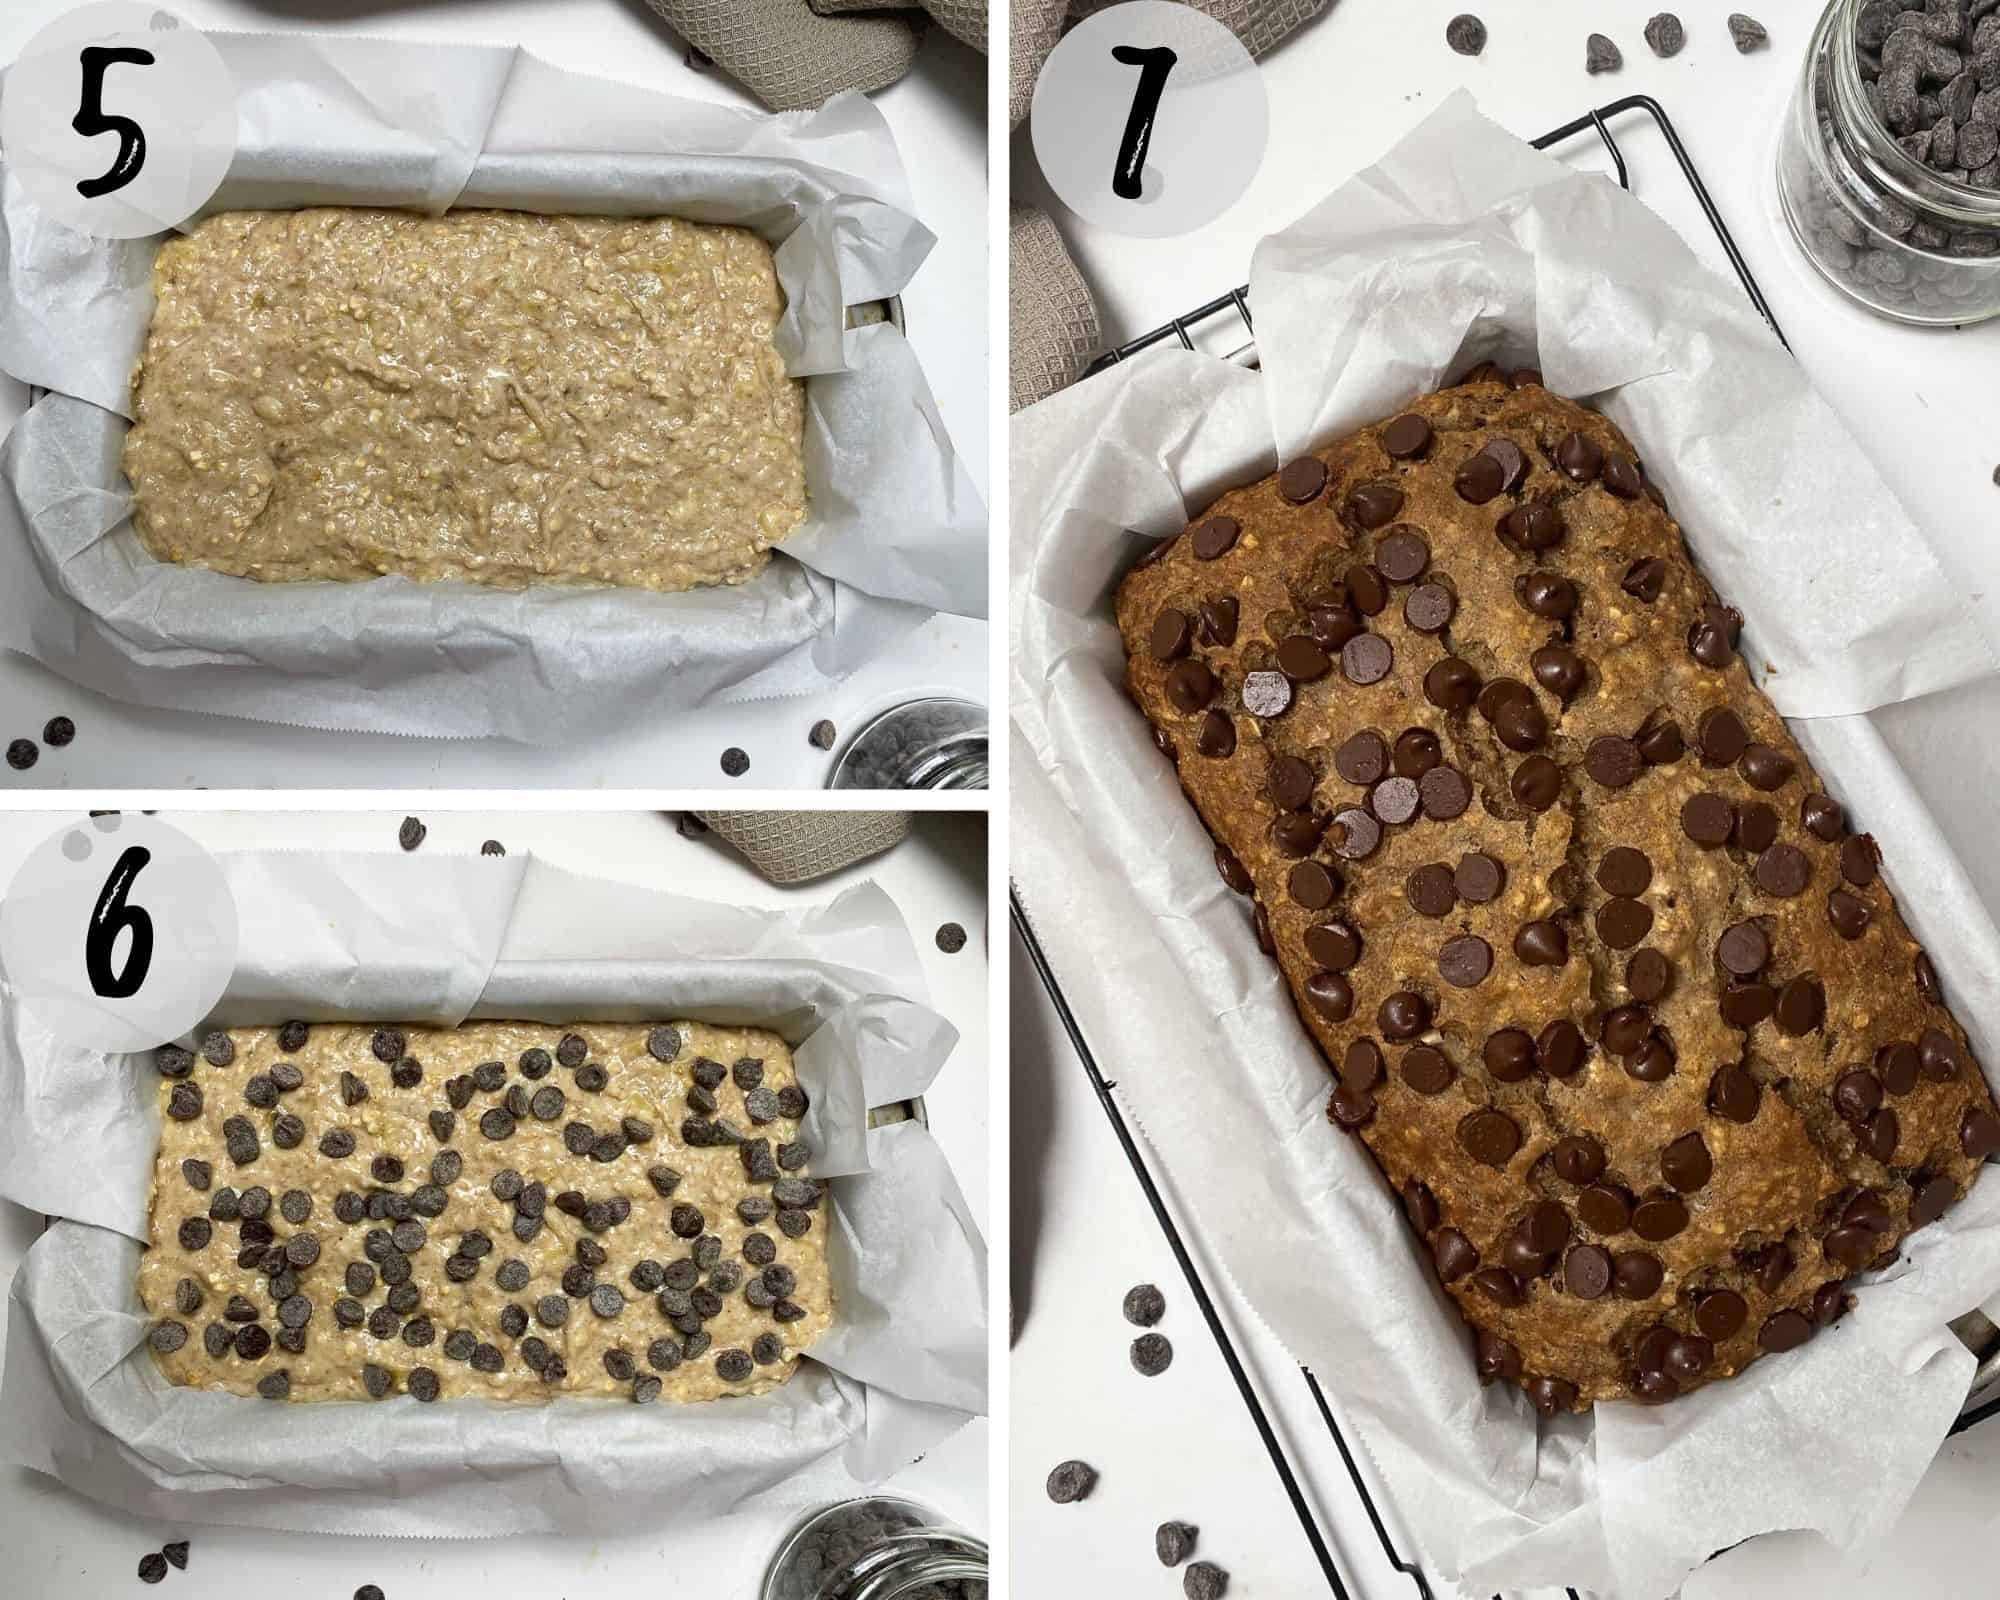 Collage of images showing banana bread in loaf pan raw and then baked.